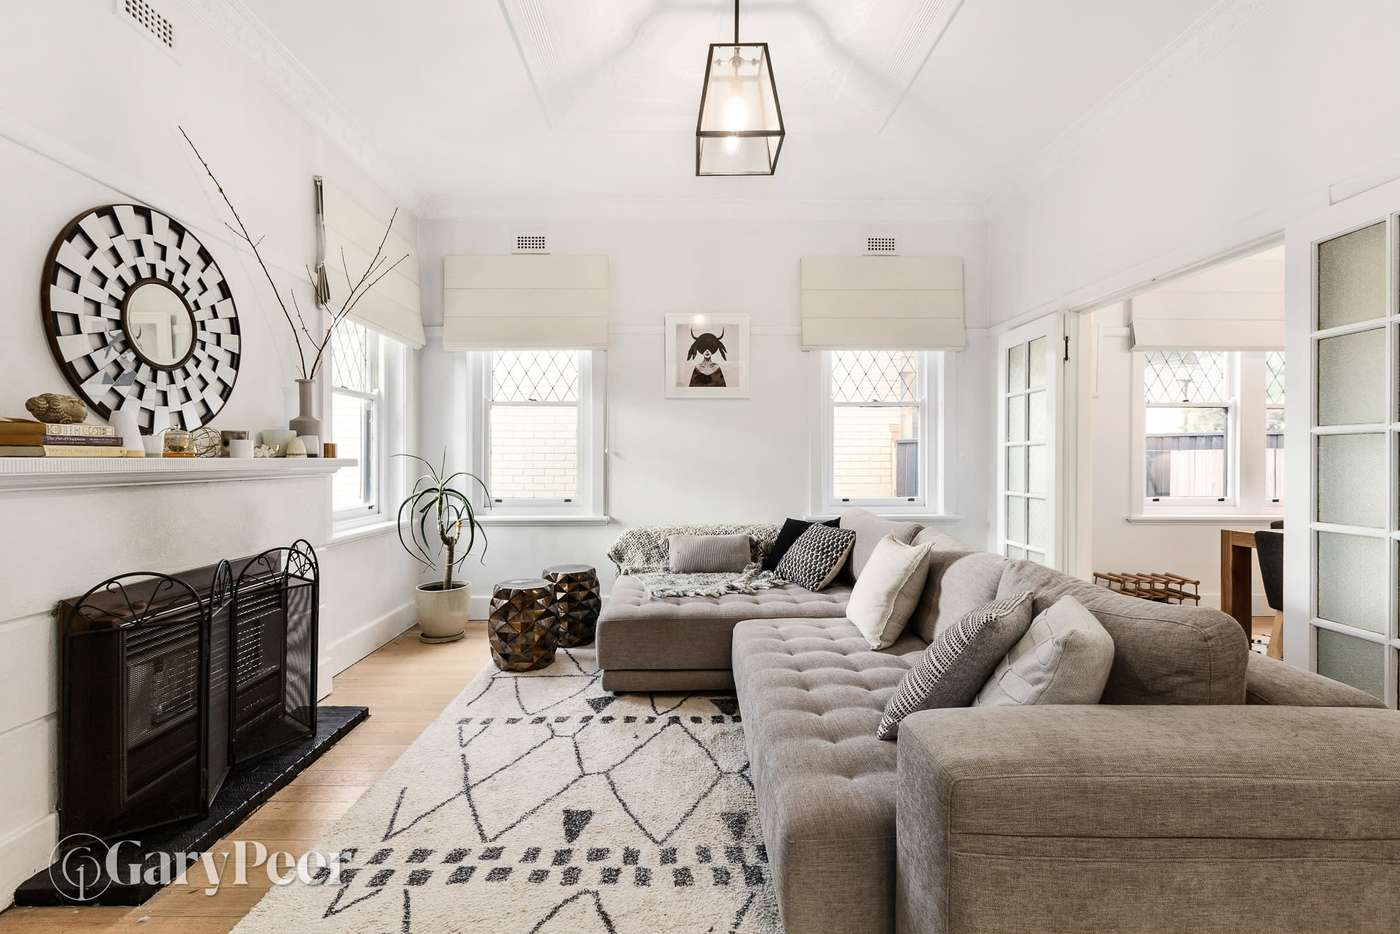 Fifth view of Homely house listing, 21 Bayview Street, Elsternwick VIC 3185